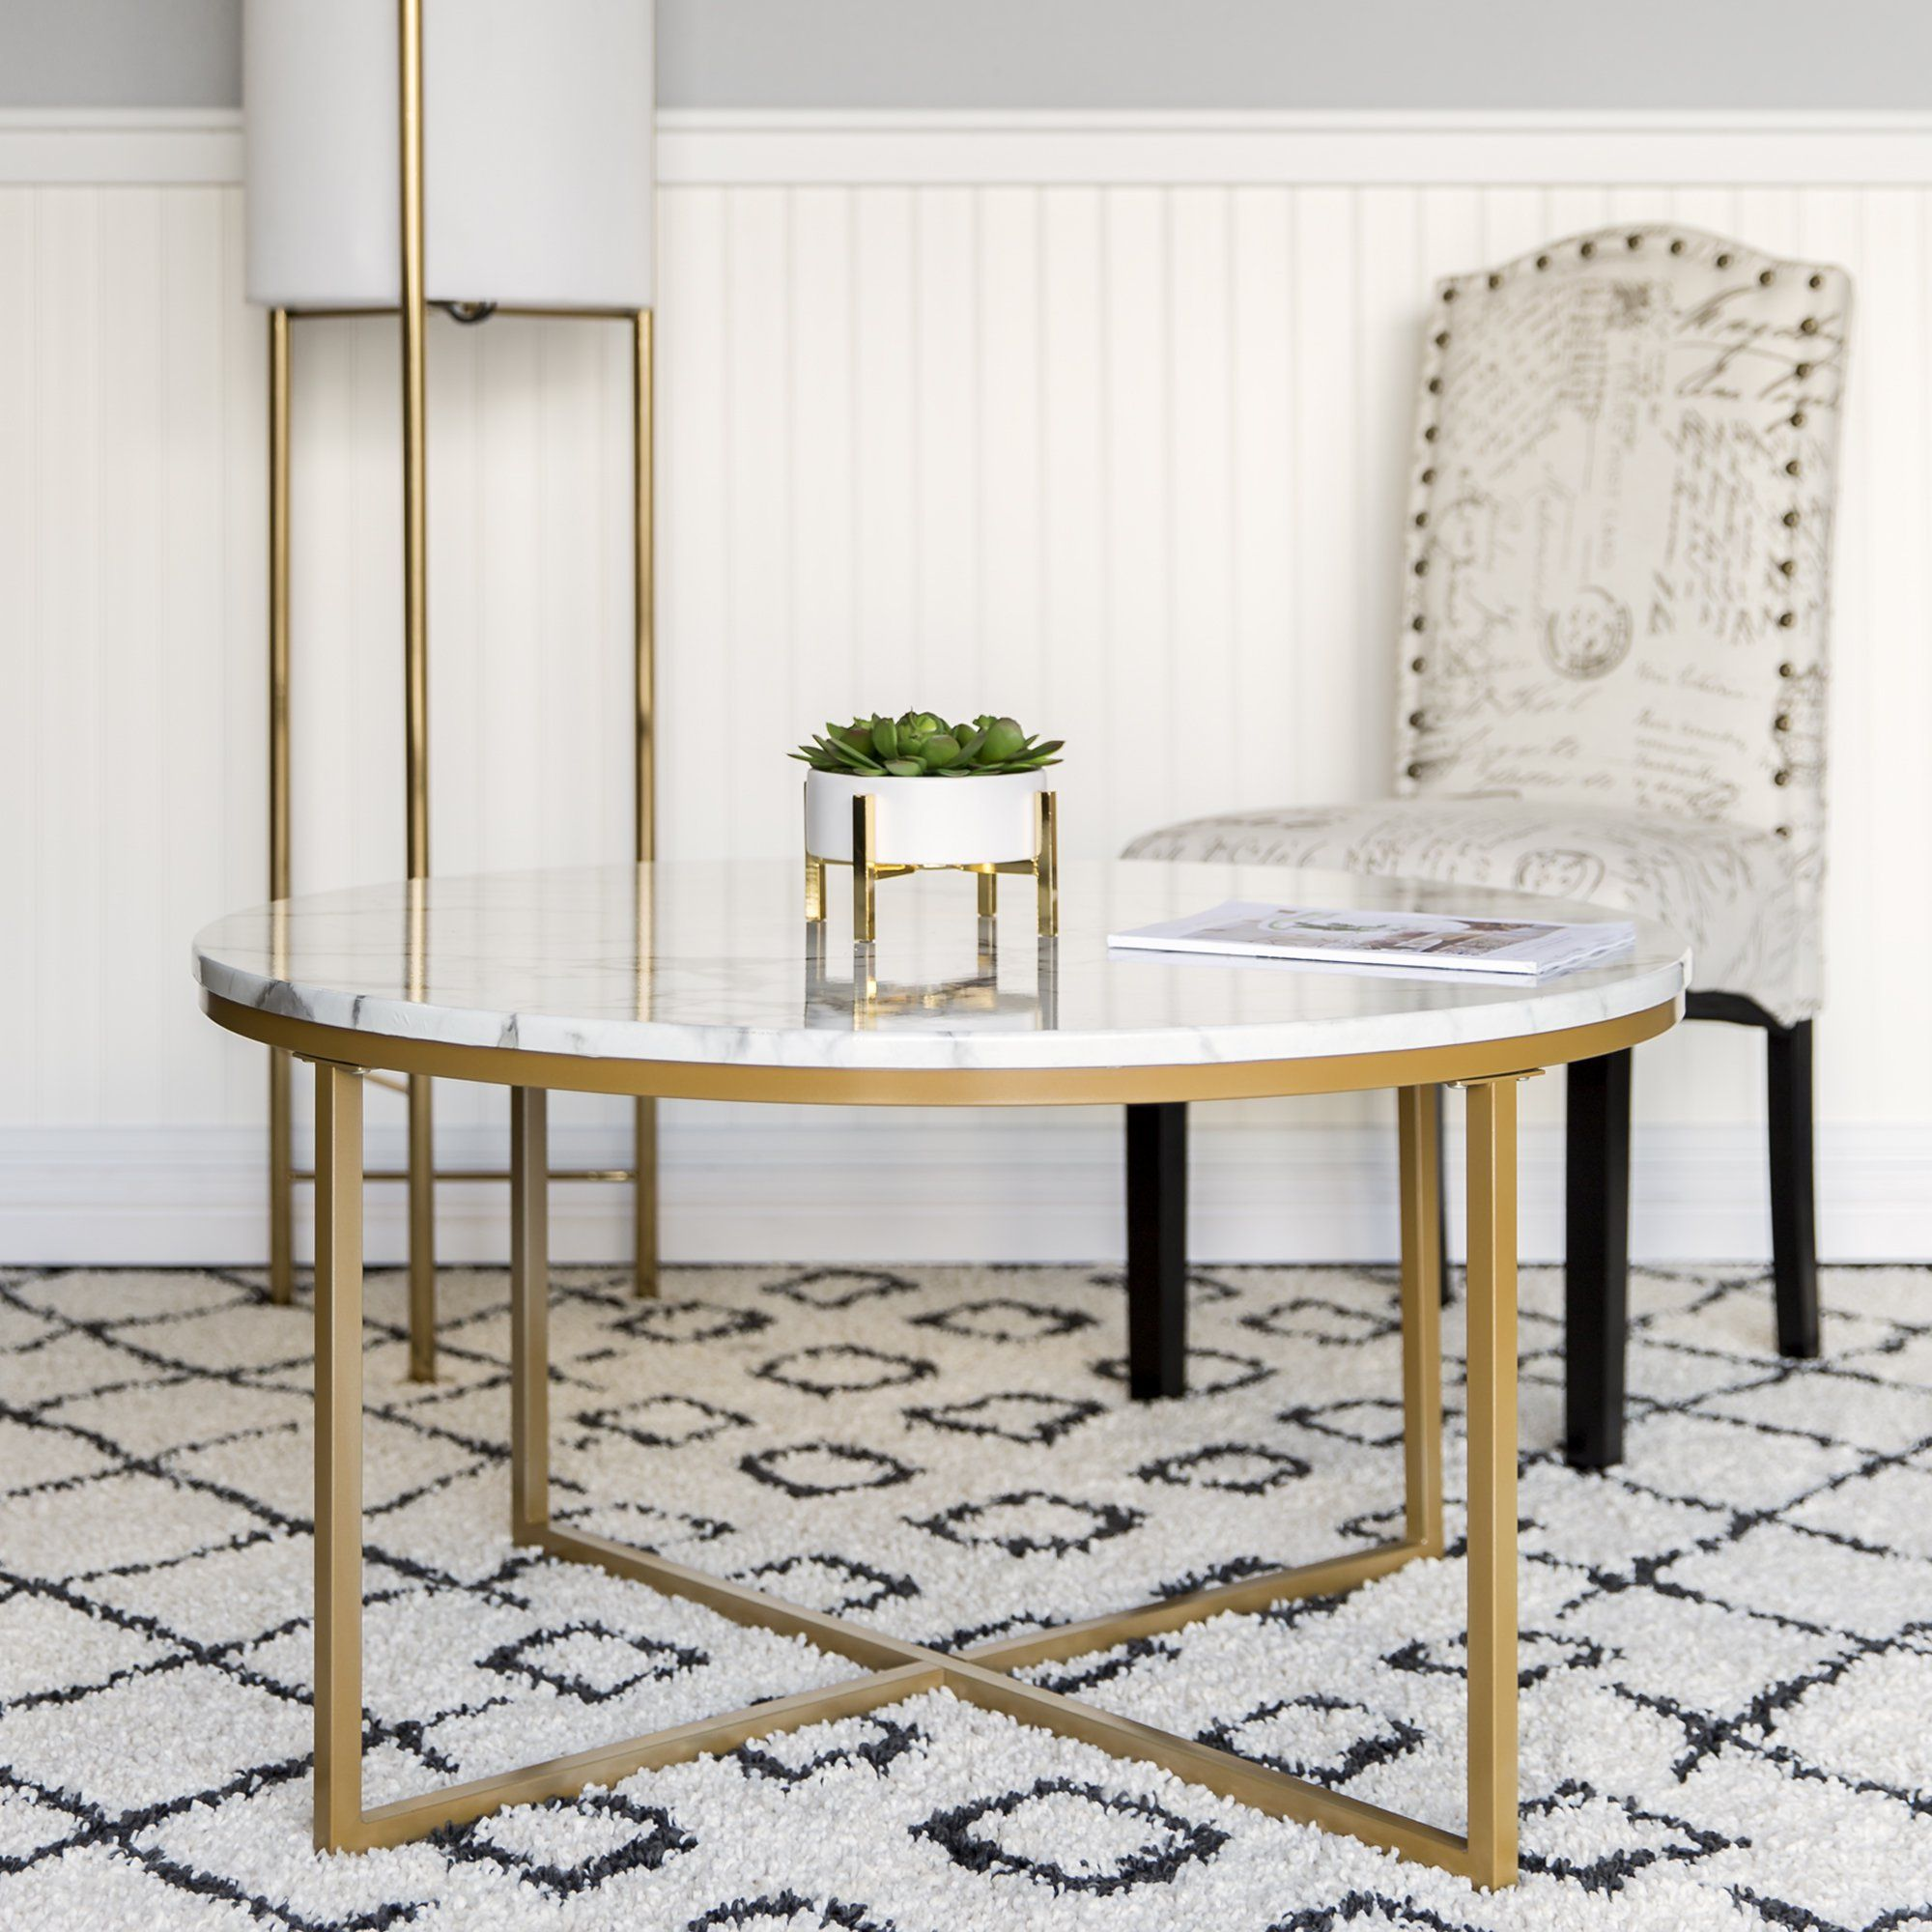 Best Choice Products 36in Faux Marble Modern Living Room Round Accent Side Coffee Table W Metal Frame White Bronze Gold Walmart Com In 2021 Marble Tables Living Room Round Coffee Table Living Room [ 2000 x 2000 Pixel ]